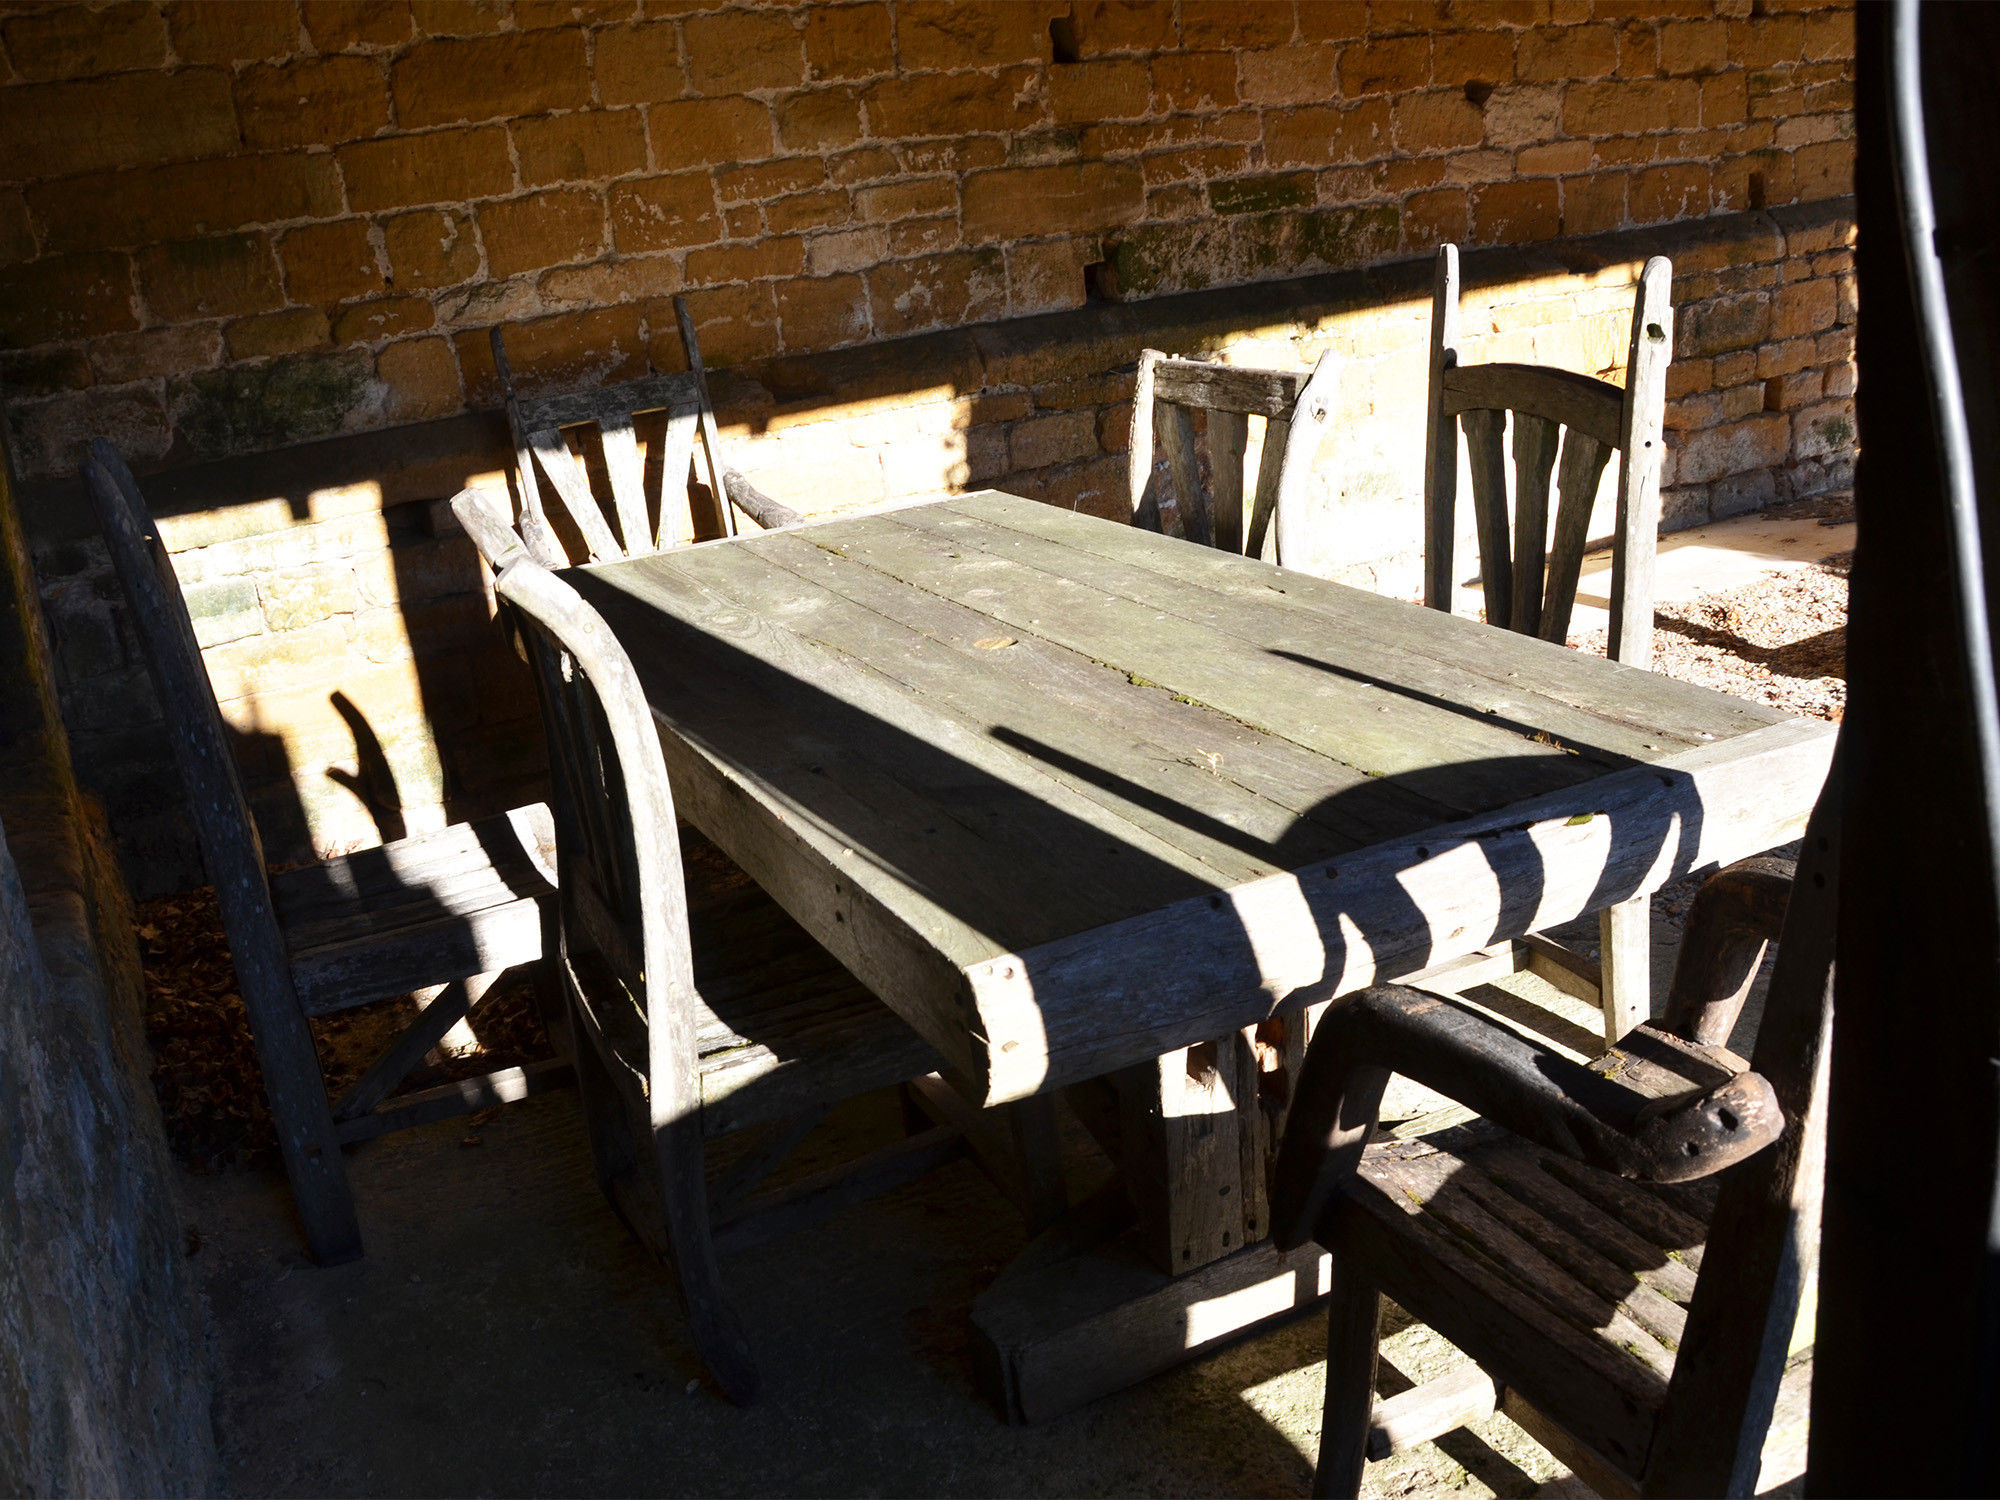 A 20th century rustic hardwood table and six chairs